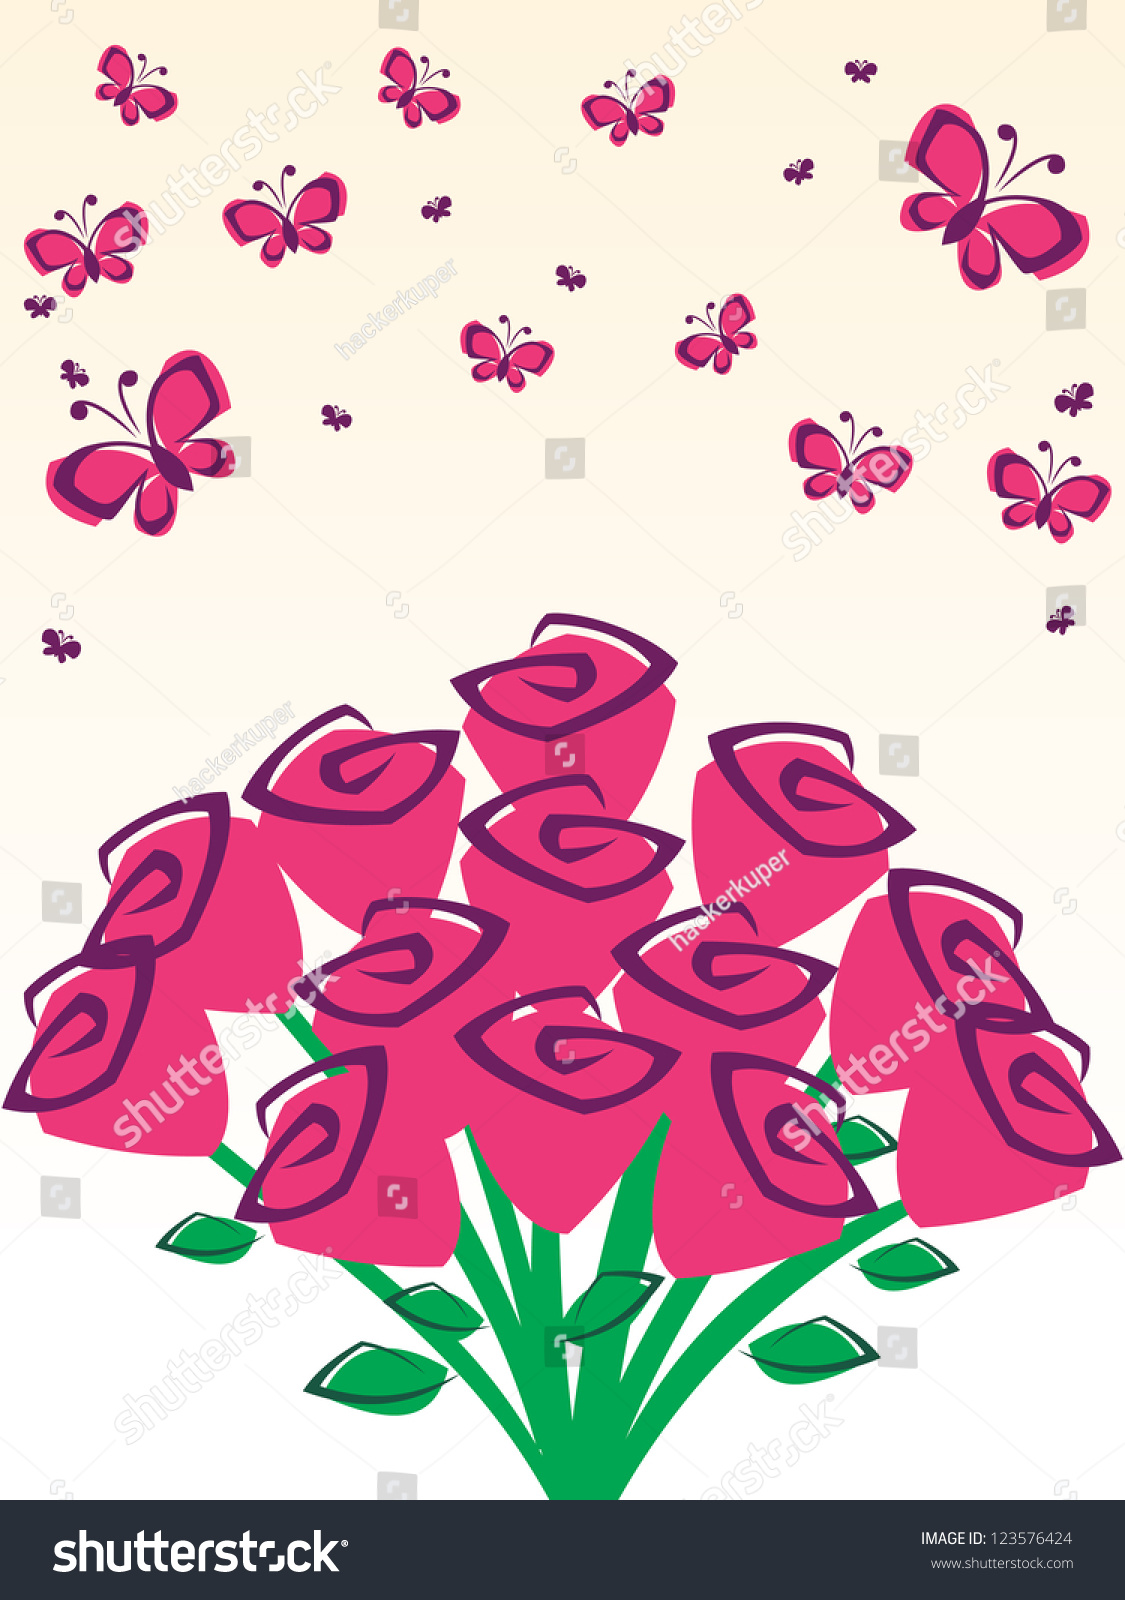 Best Wallpaper Butterfly Hand - stock-vector-vector-hand-drawn-pink-rose-flower-bouquet-wallpaper-background-with-butterfly-pattern-123576424  You Should Have_32758.jpg